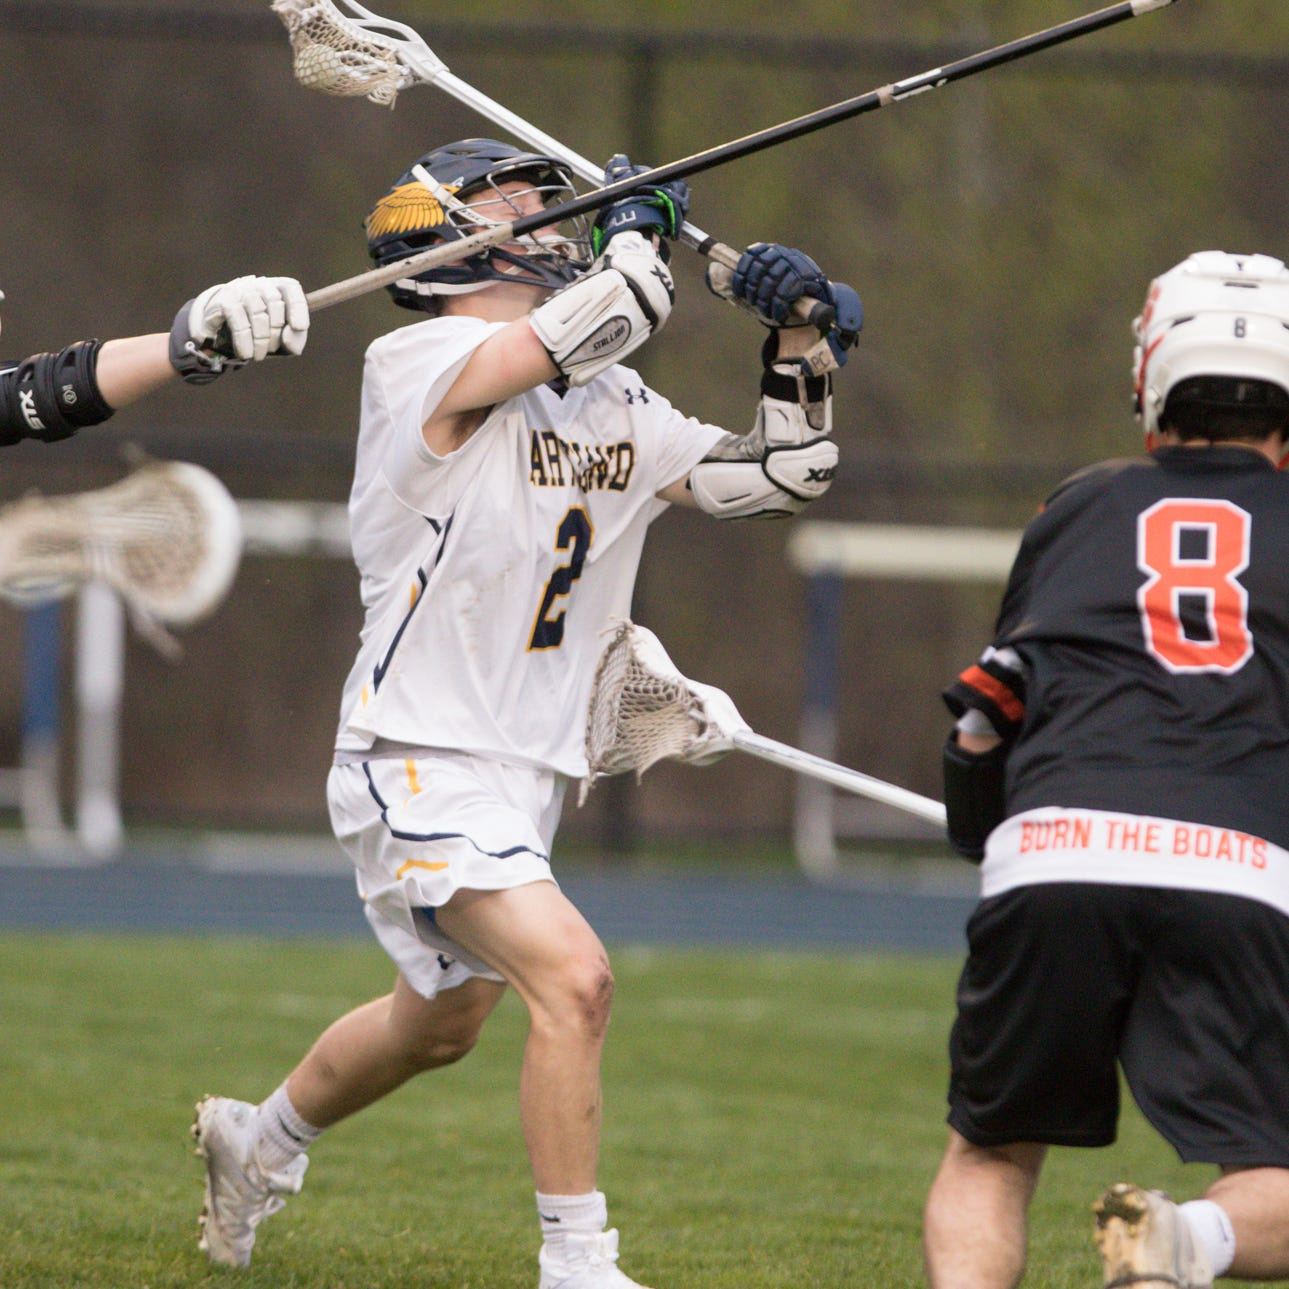 Freshman meshes with 'role model' in Hartland lacrosse win over Brighton